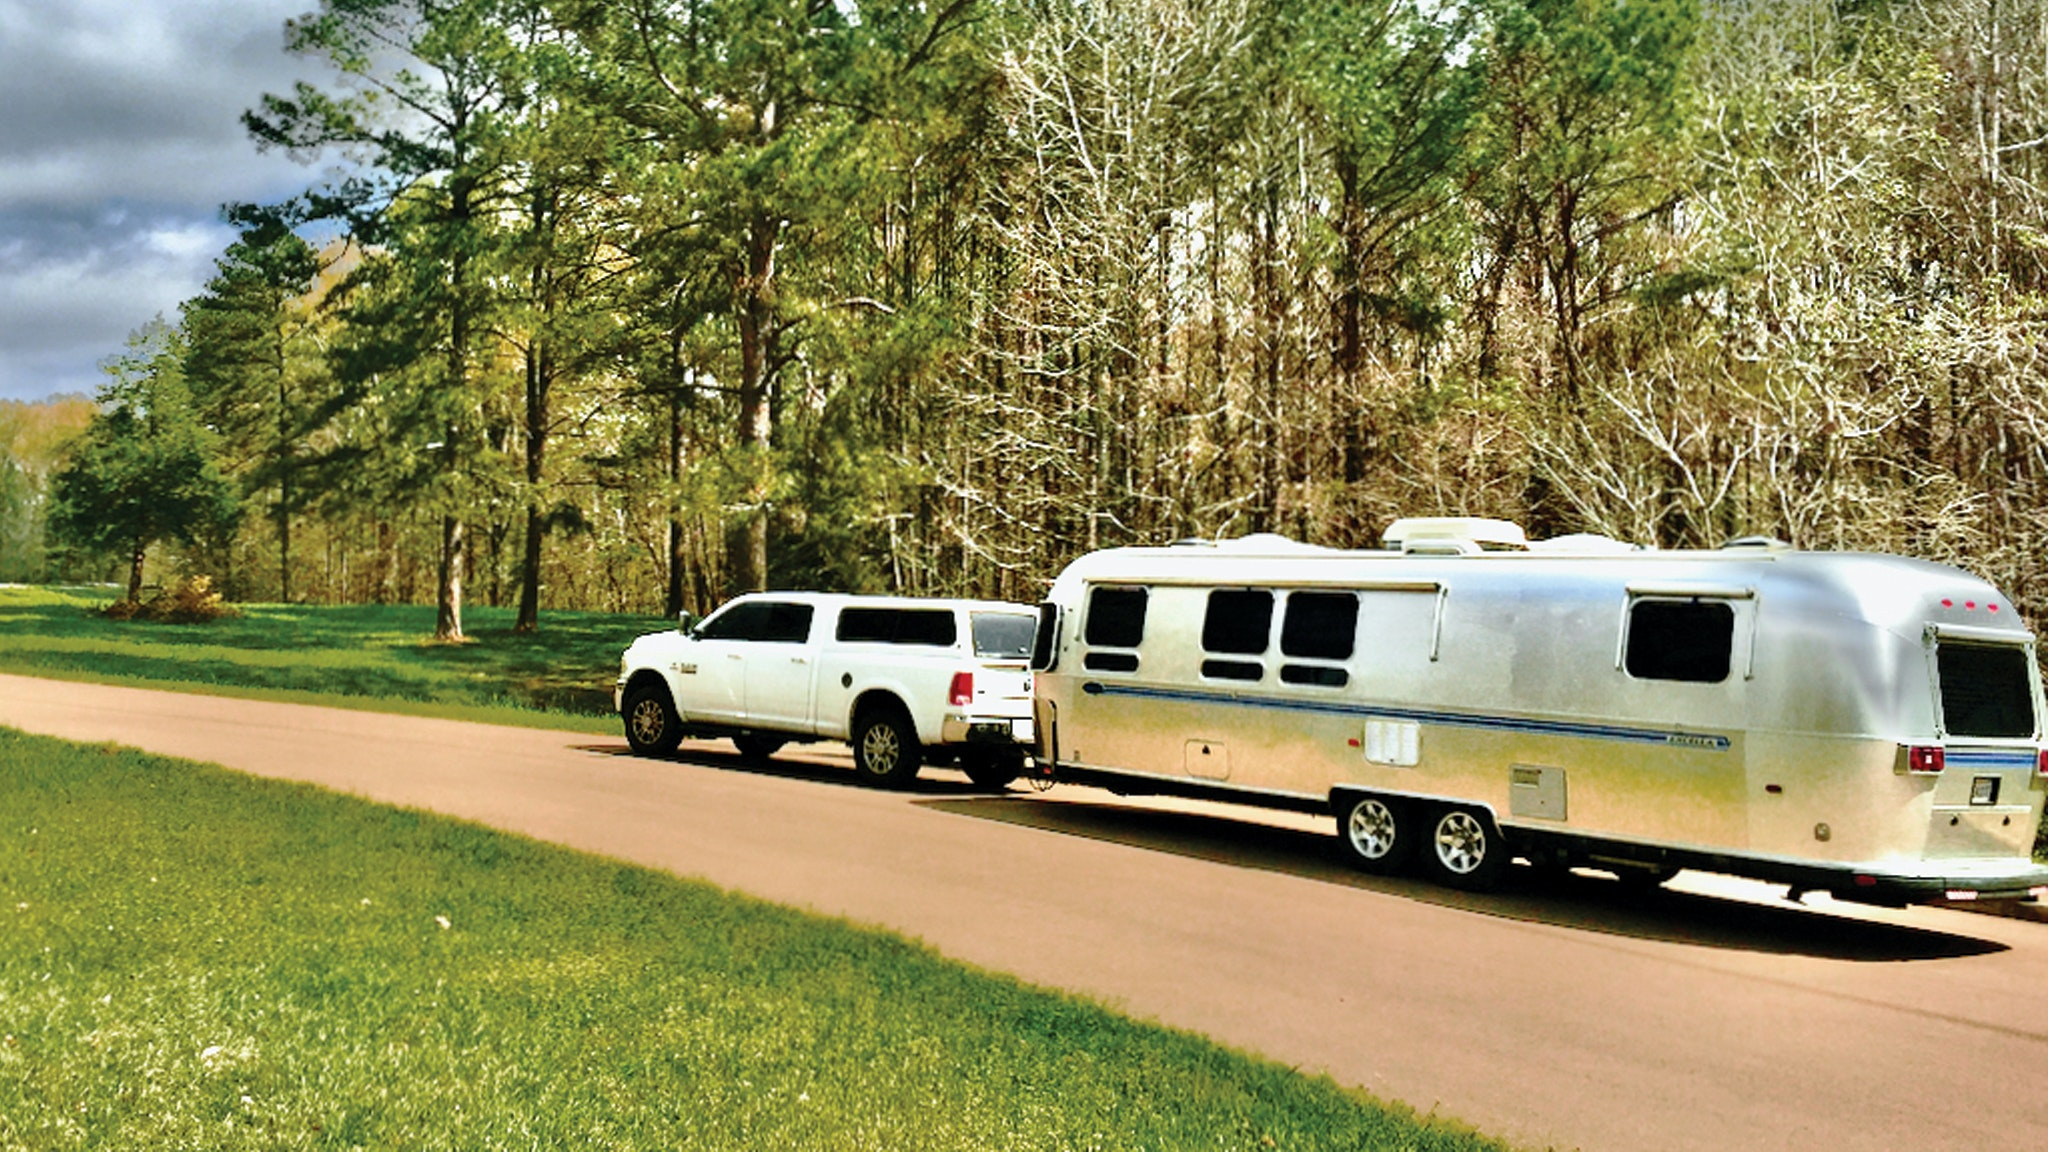 Airstream named Beauty driving down a lane